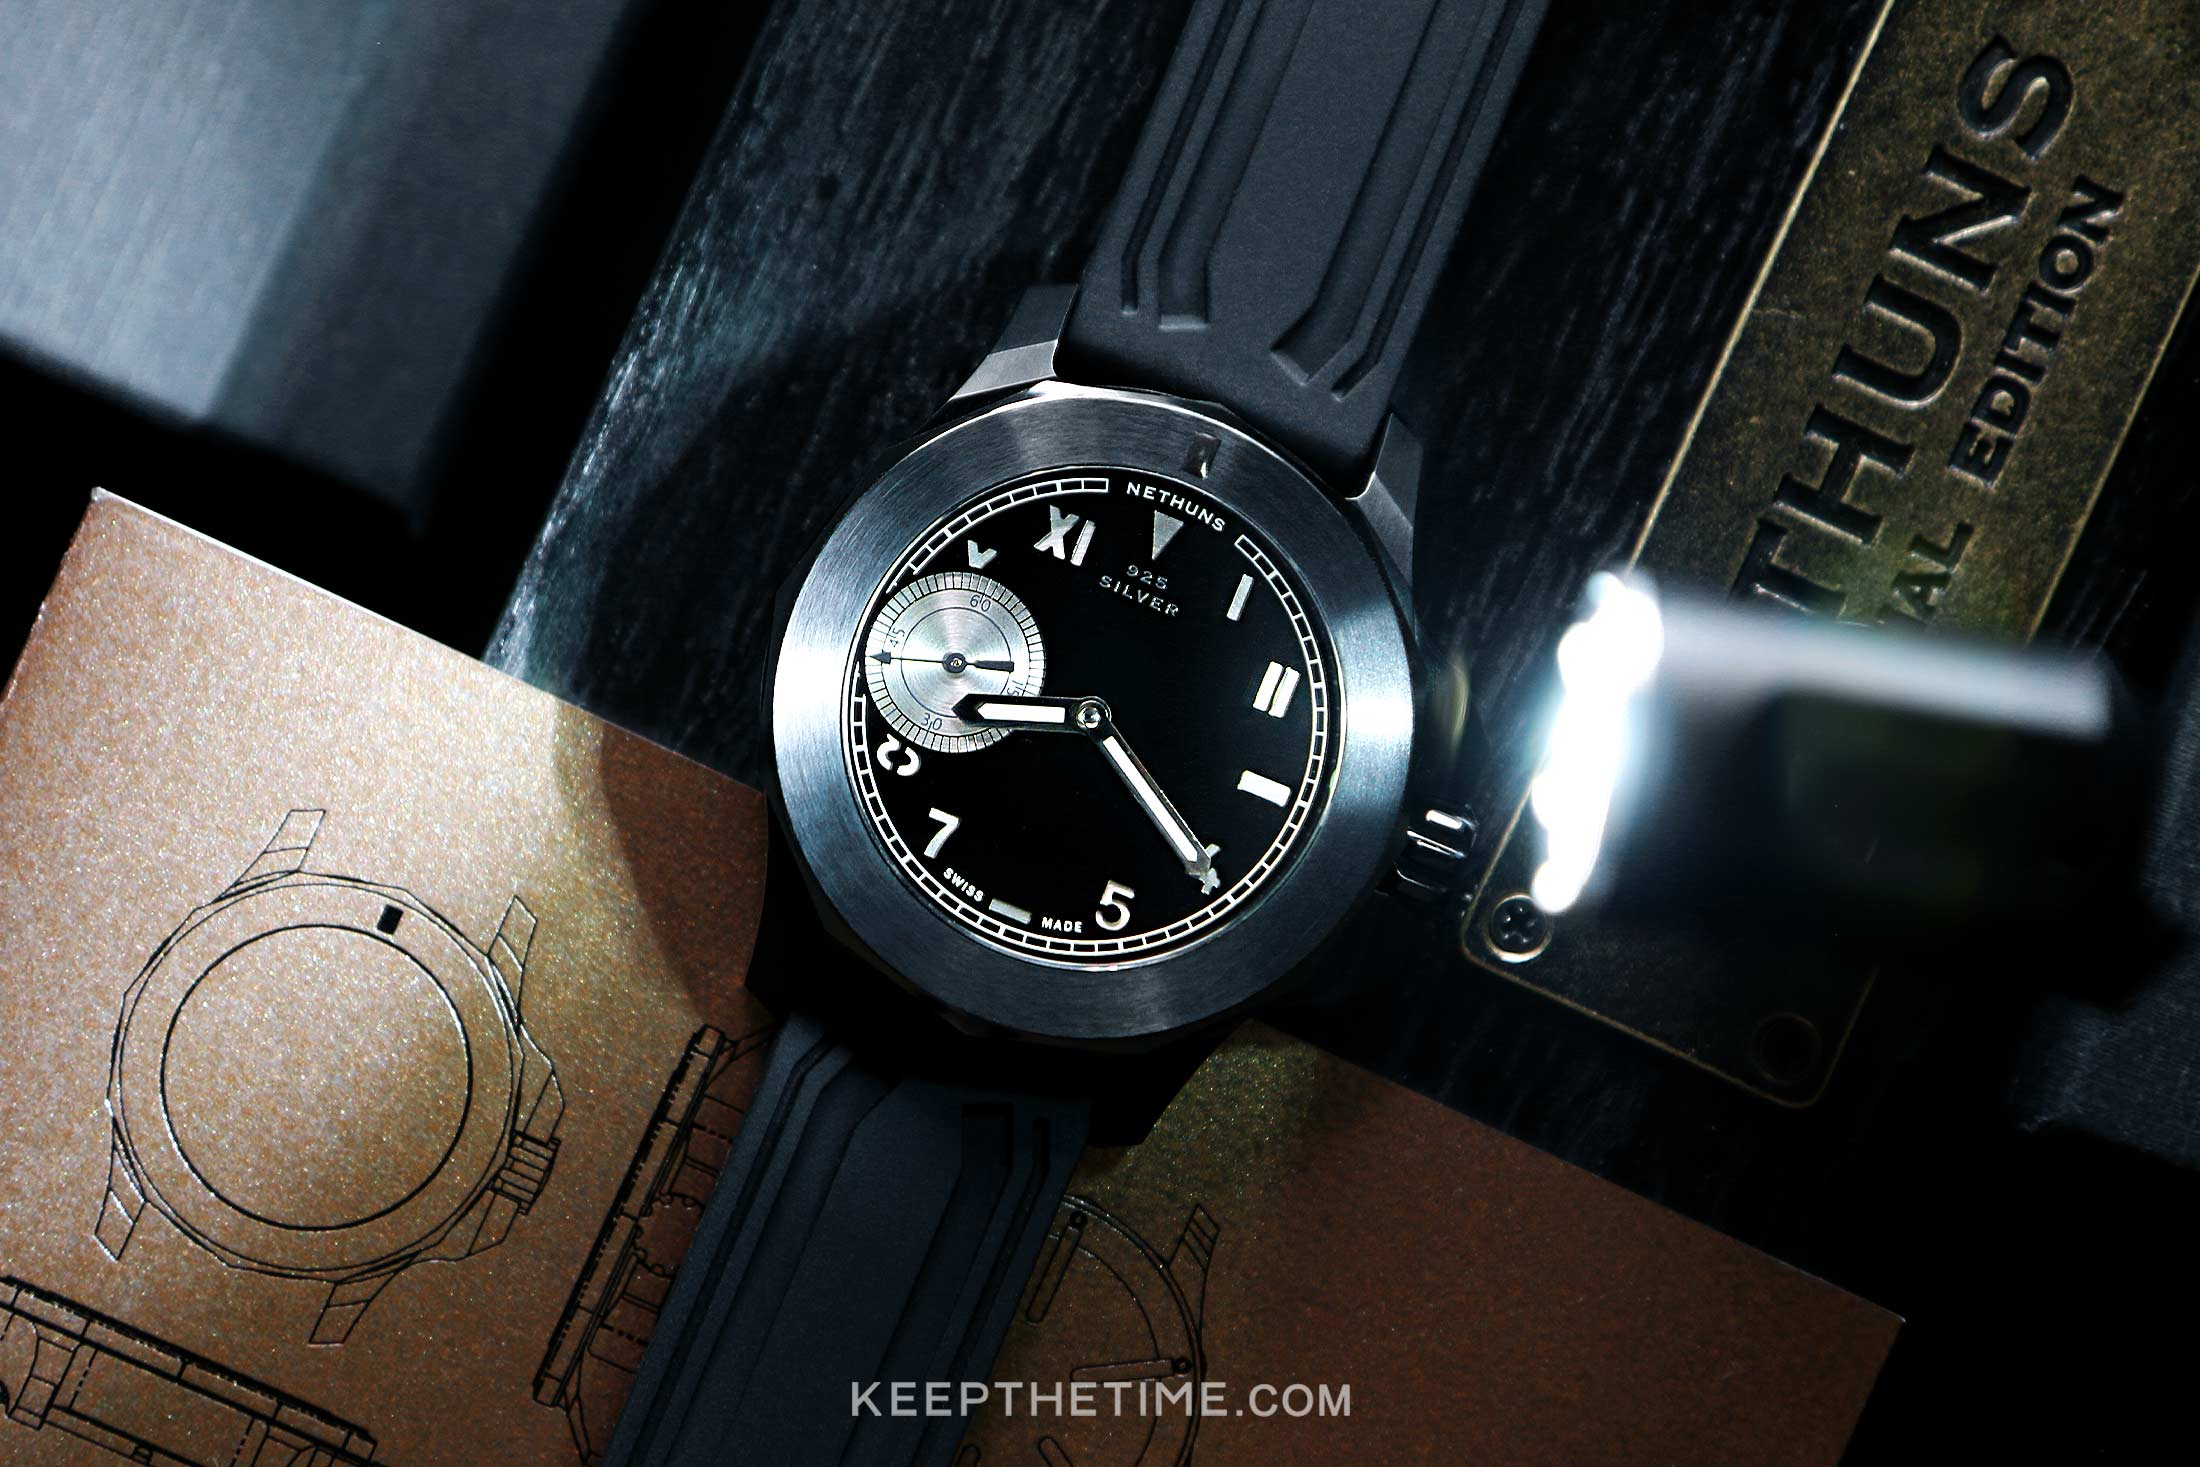 Nethuns No 7 Special Edition 925 Silver Watch 10